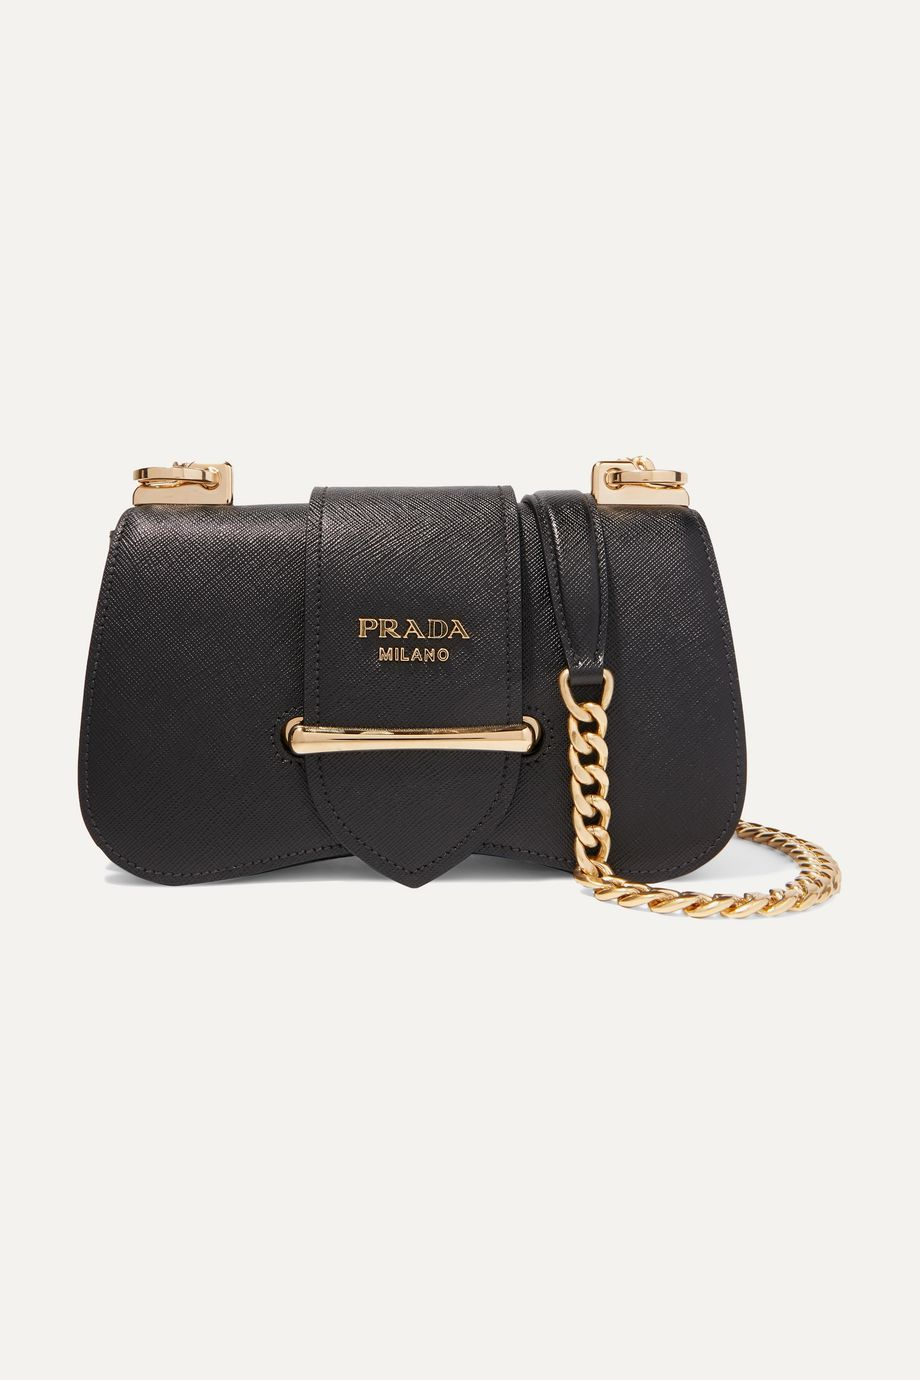 Prada Sidonie textured-leather shoulder bag